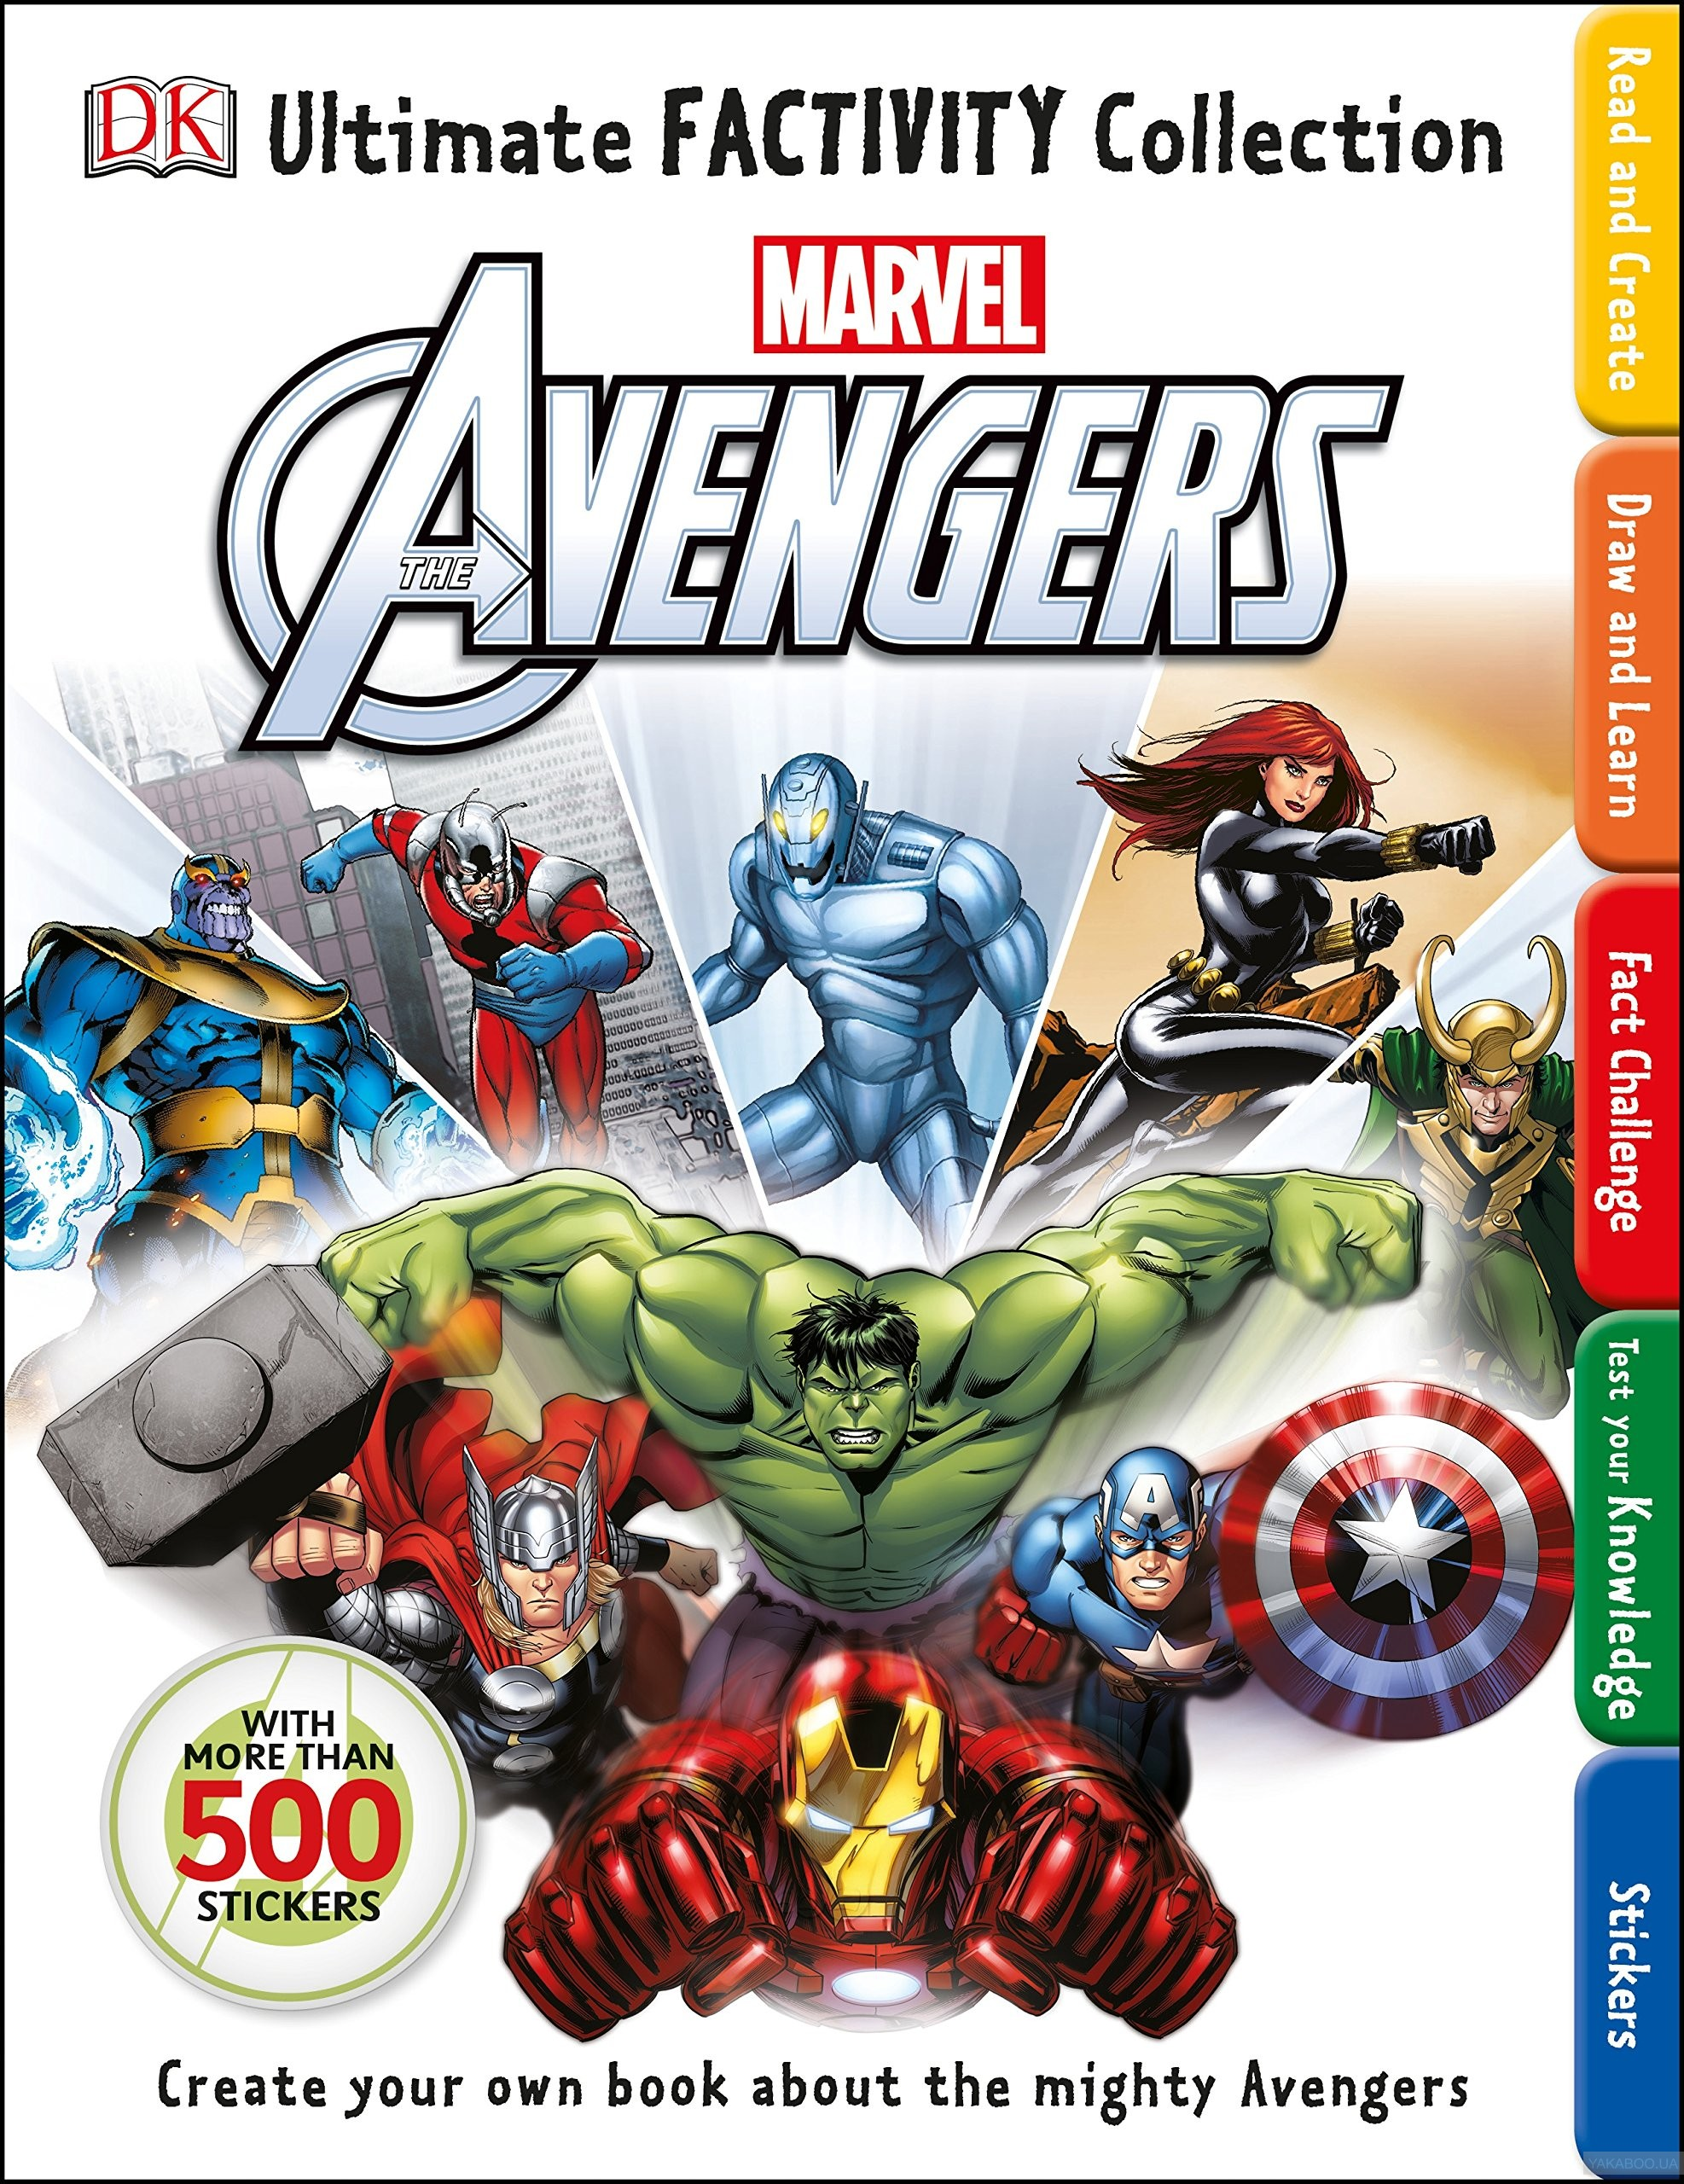 Marvel the Avengers Ultimate Factivity Collection with 500 stickers